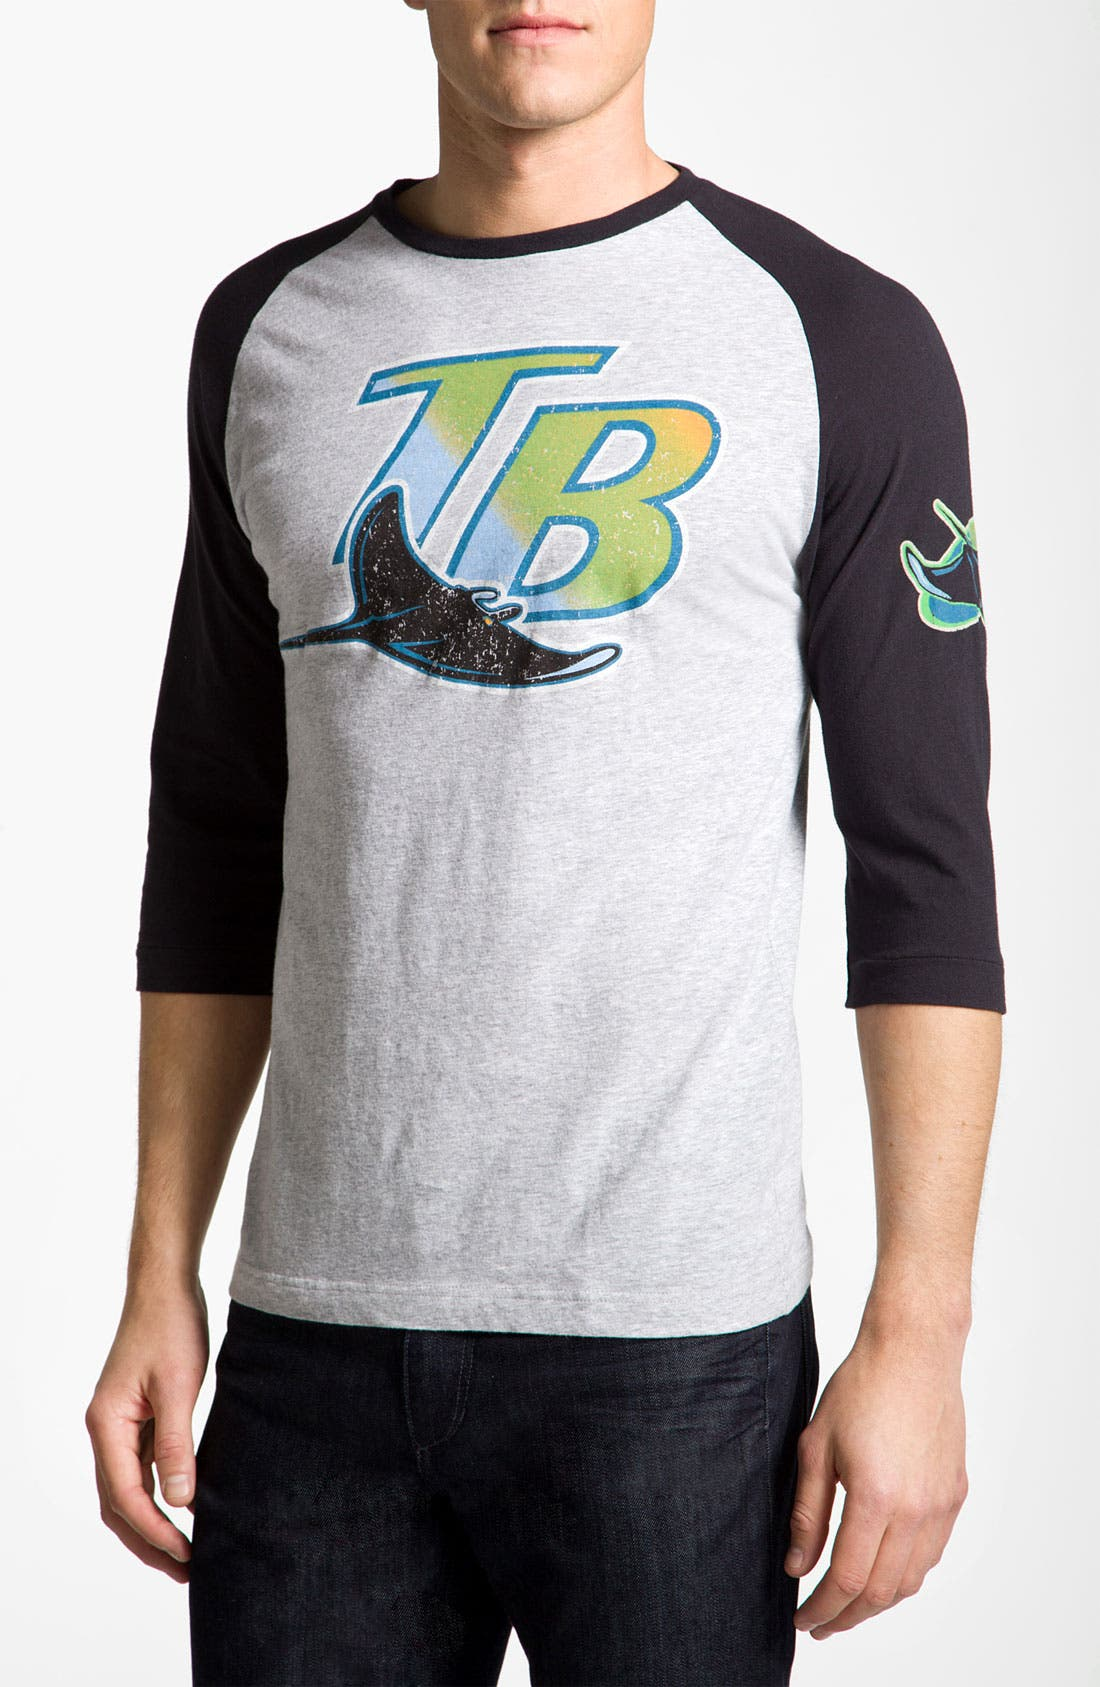 Alternate Image 1 Selected - Wright & Ditson 'Tampa Bay Rays' Baseball T-Shirt